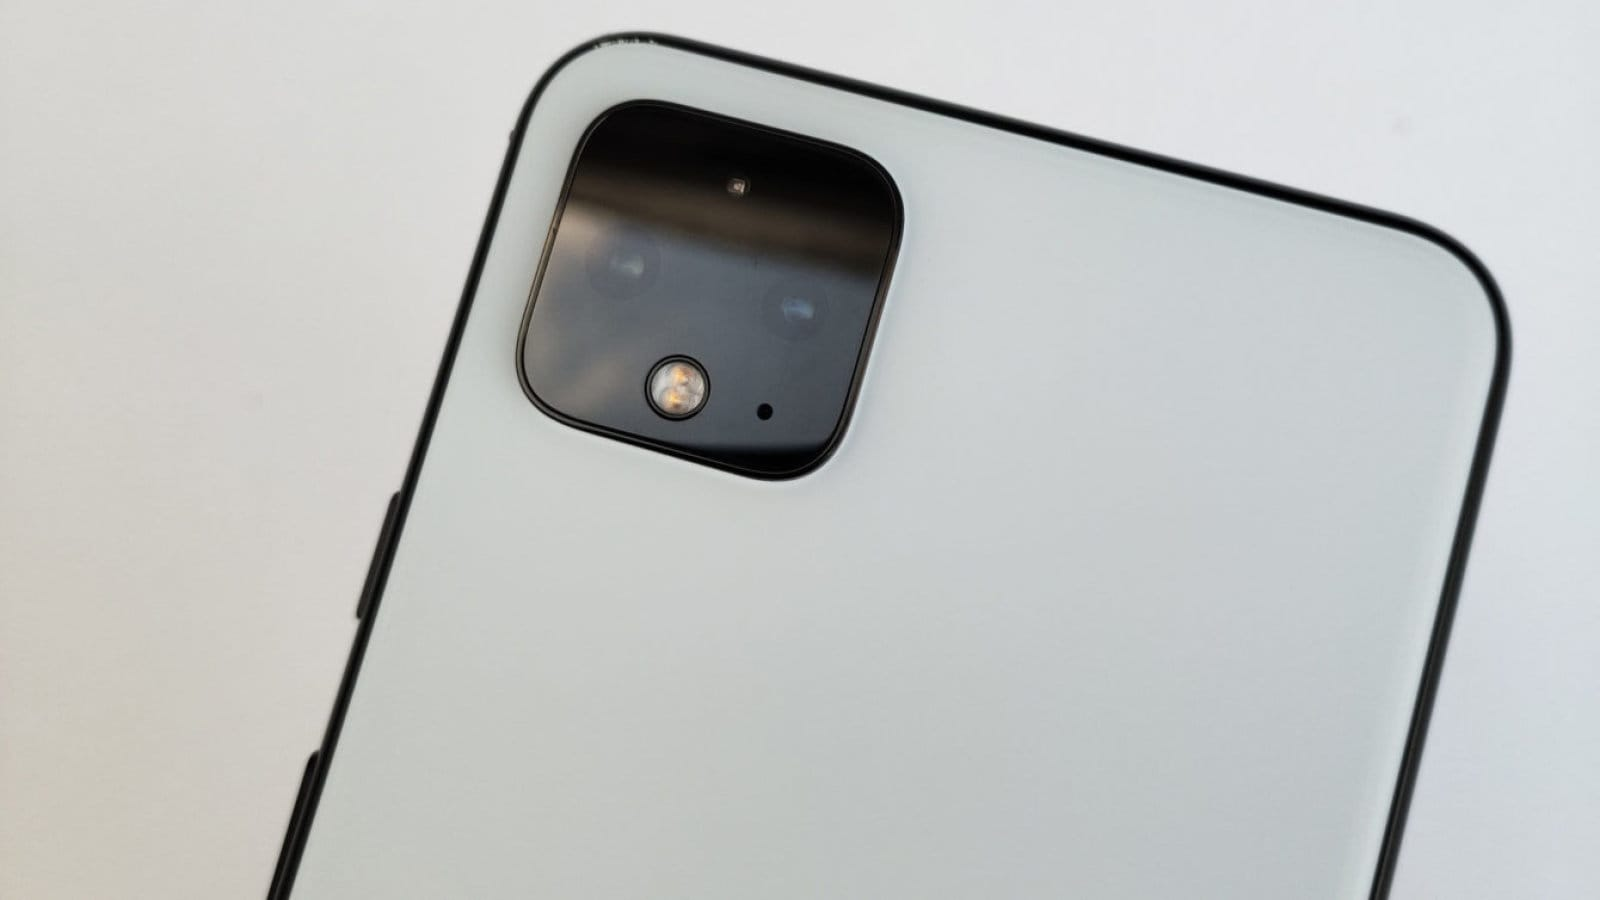 Google is reportedly testing a 5G version of the Pixel 4